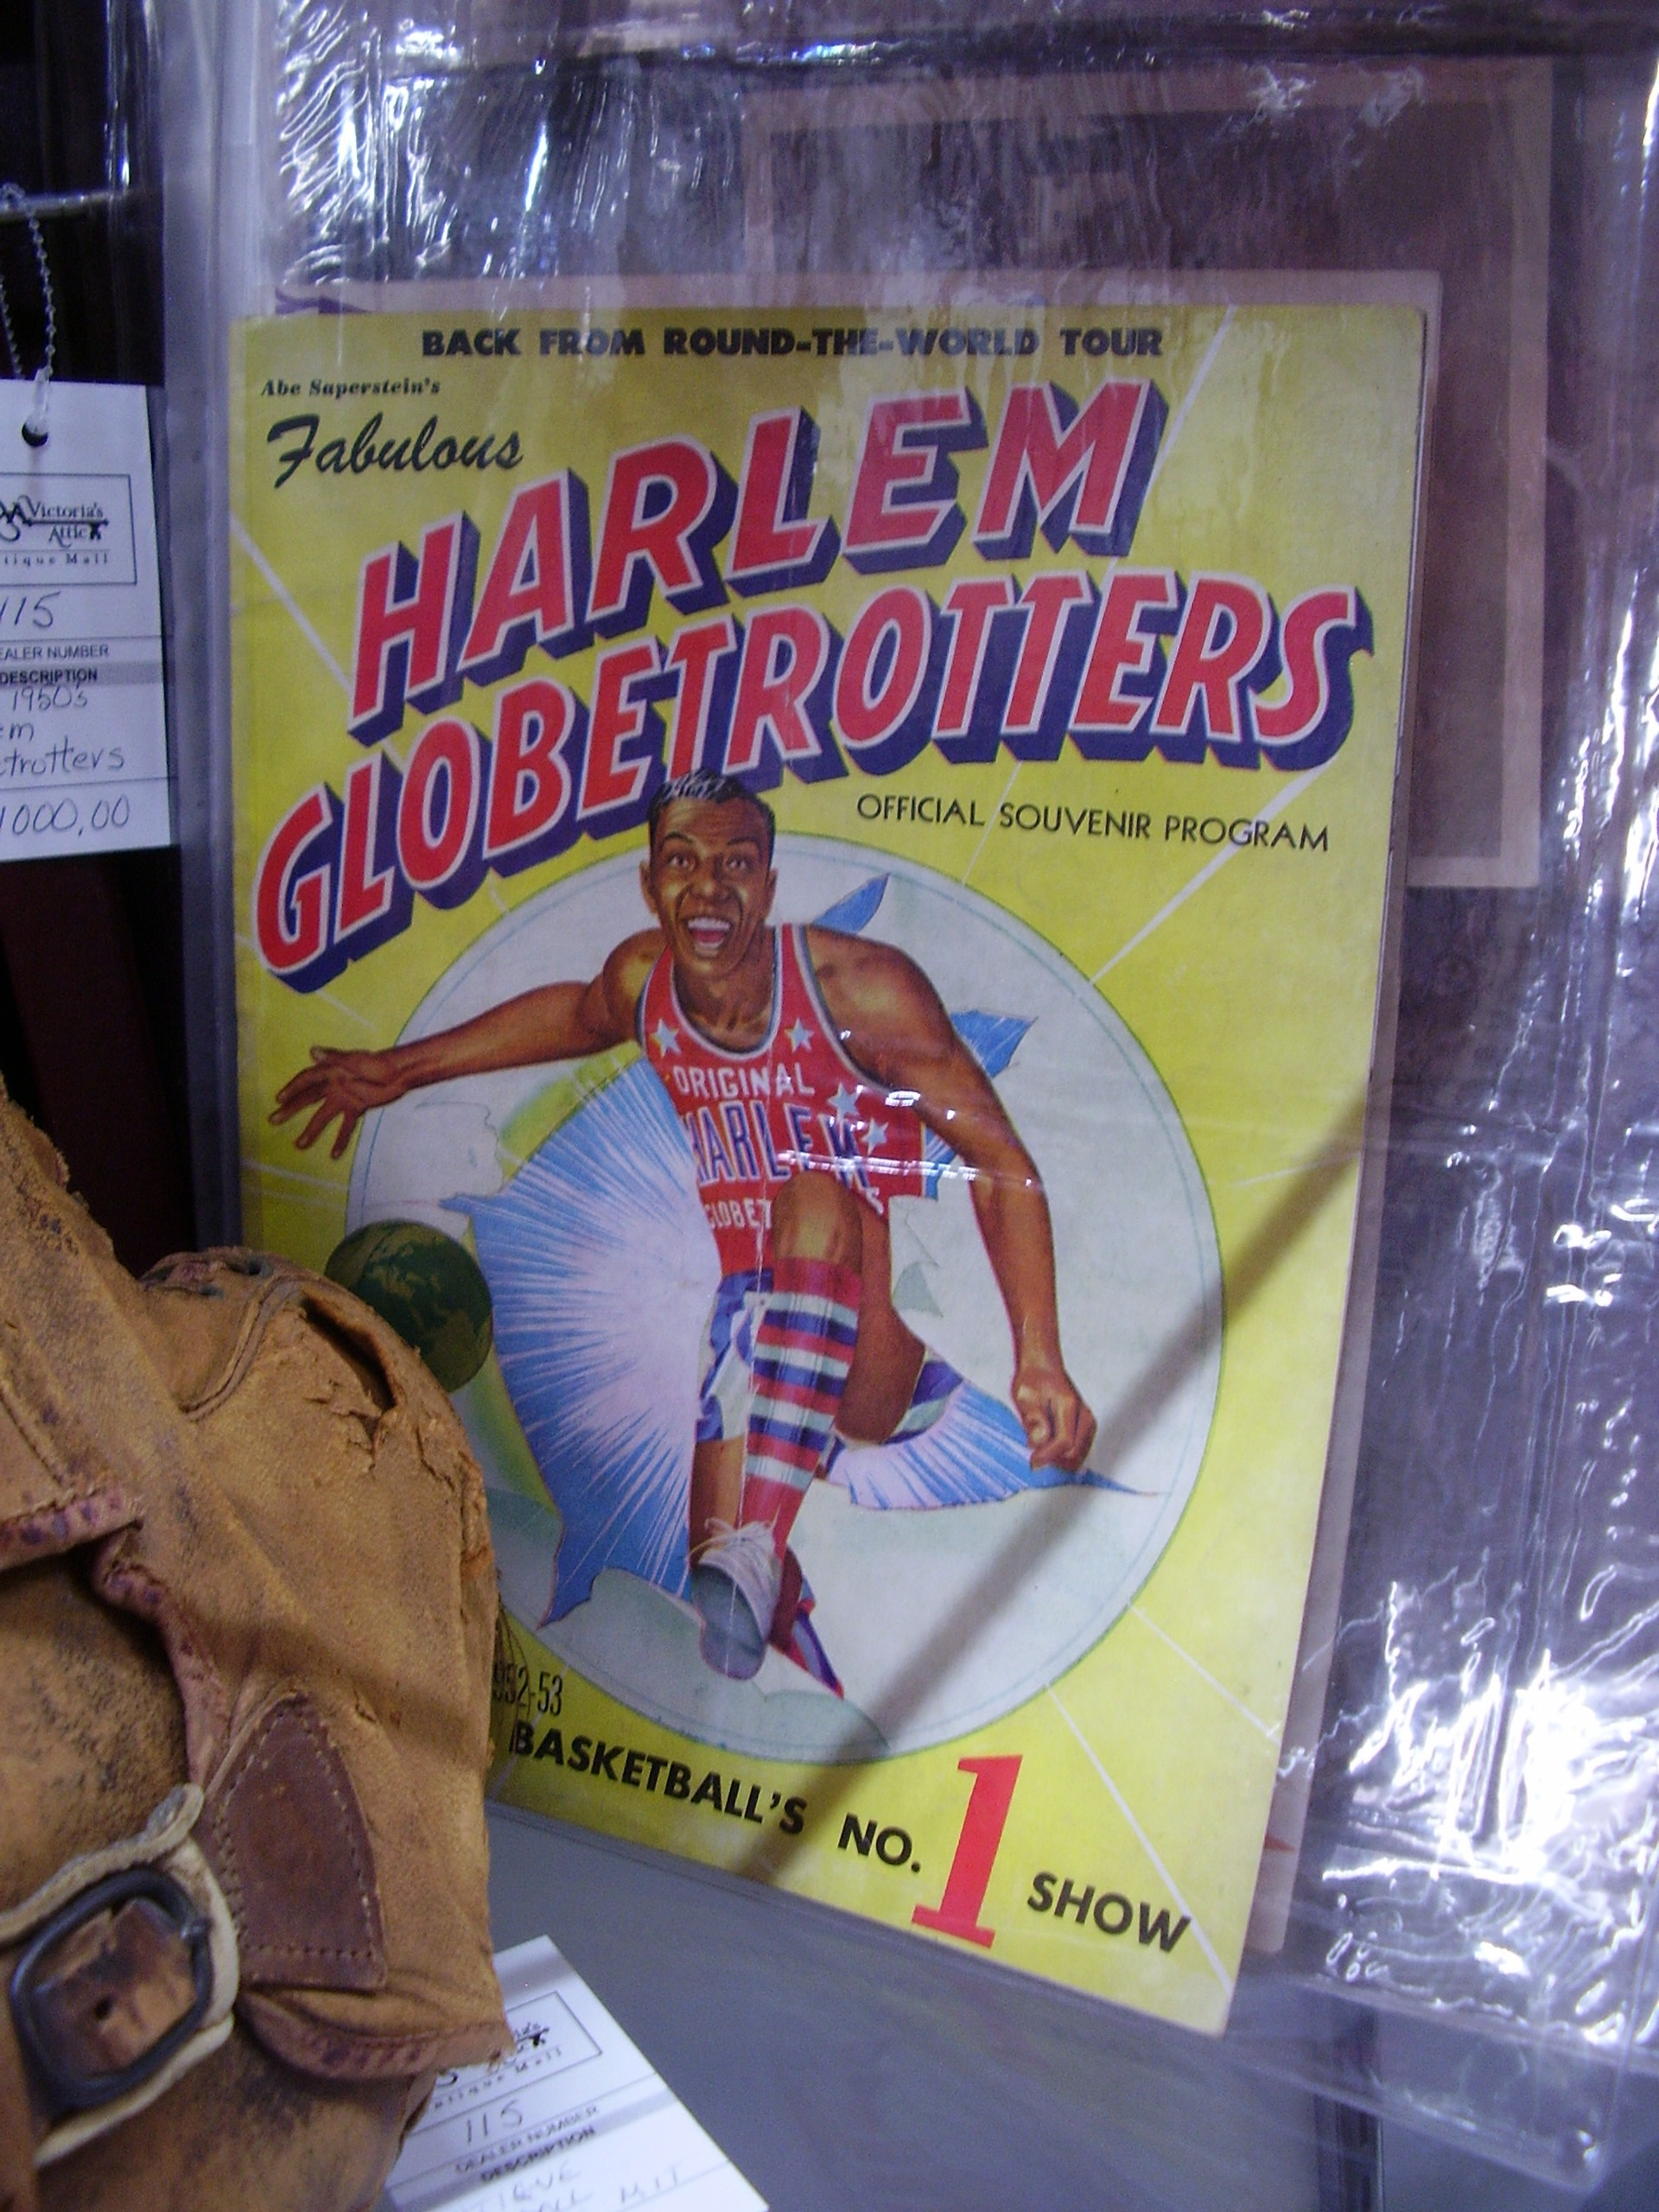 Harlem Globetrotters Souvenir Program